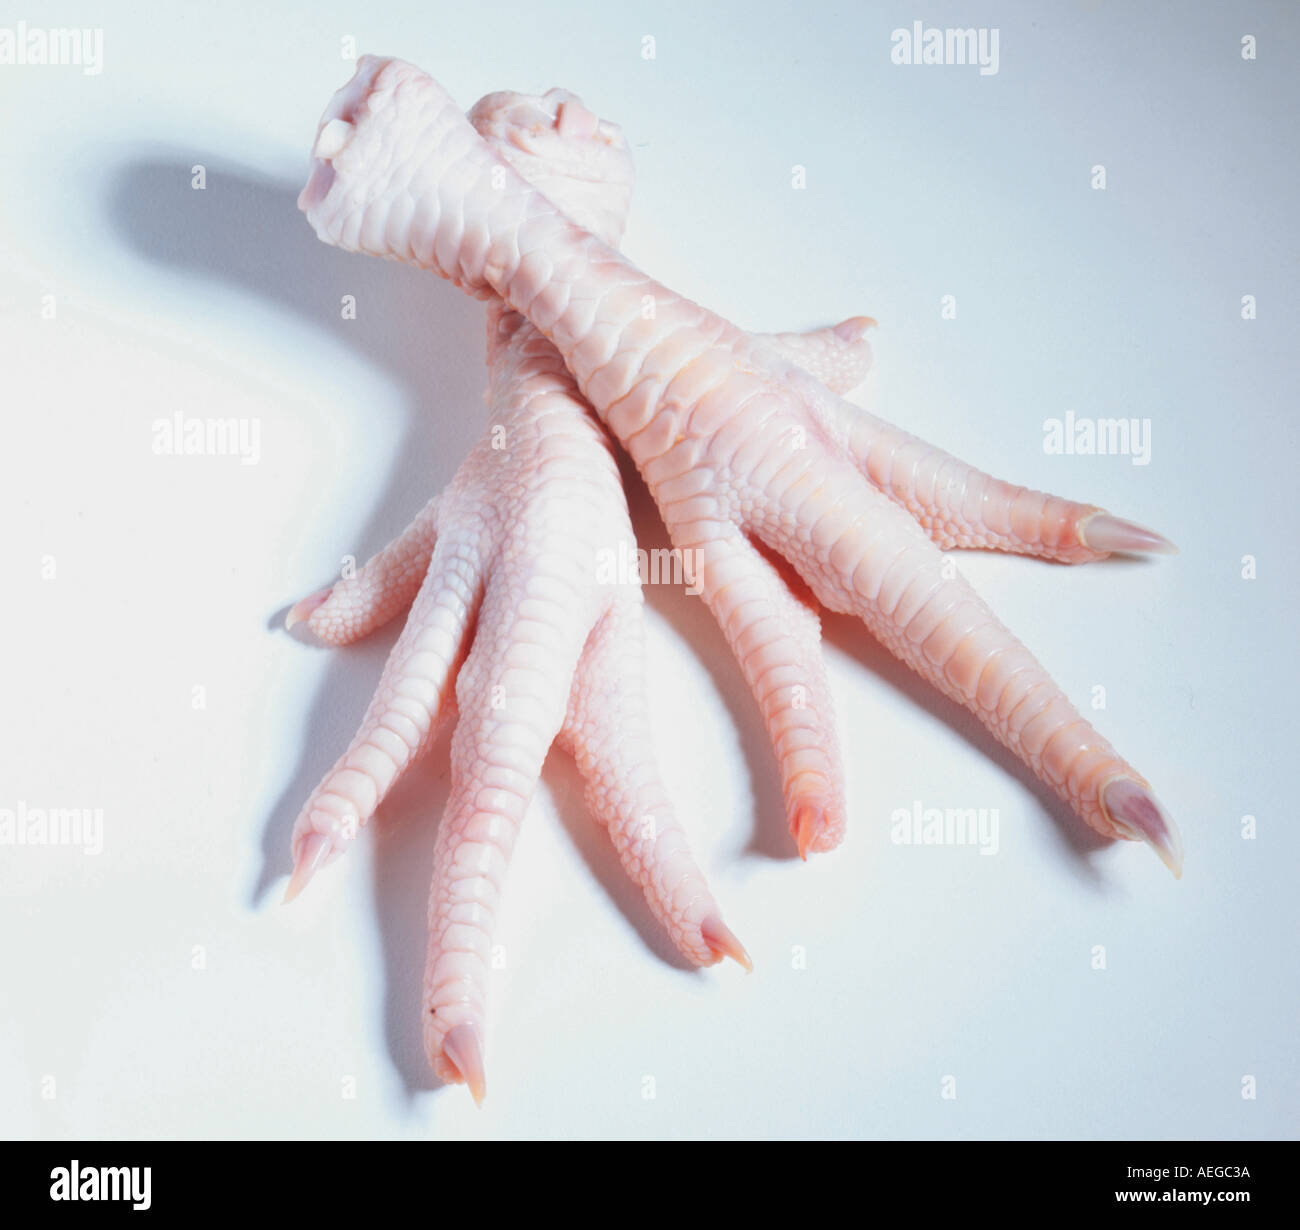 Food feet foot toes claw claws talon talons gross anatomy chicken ...